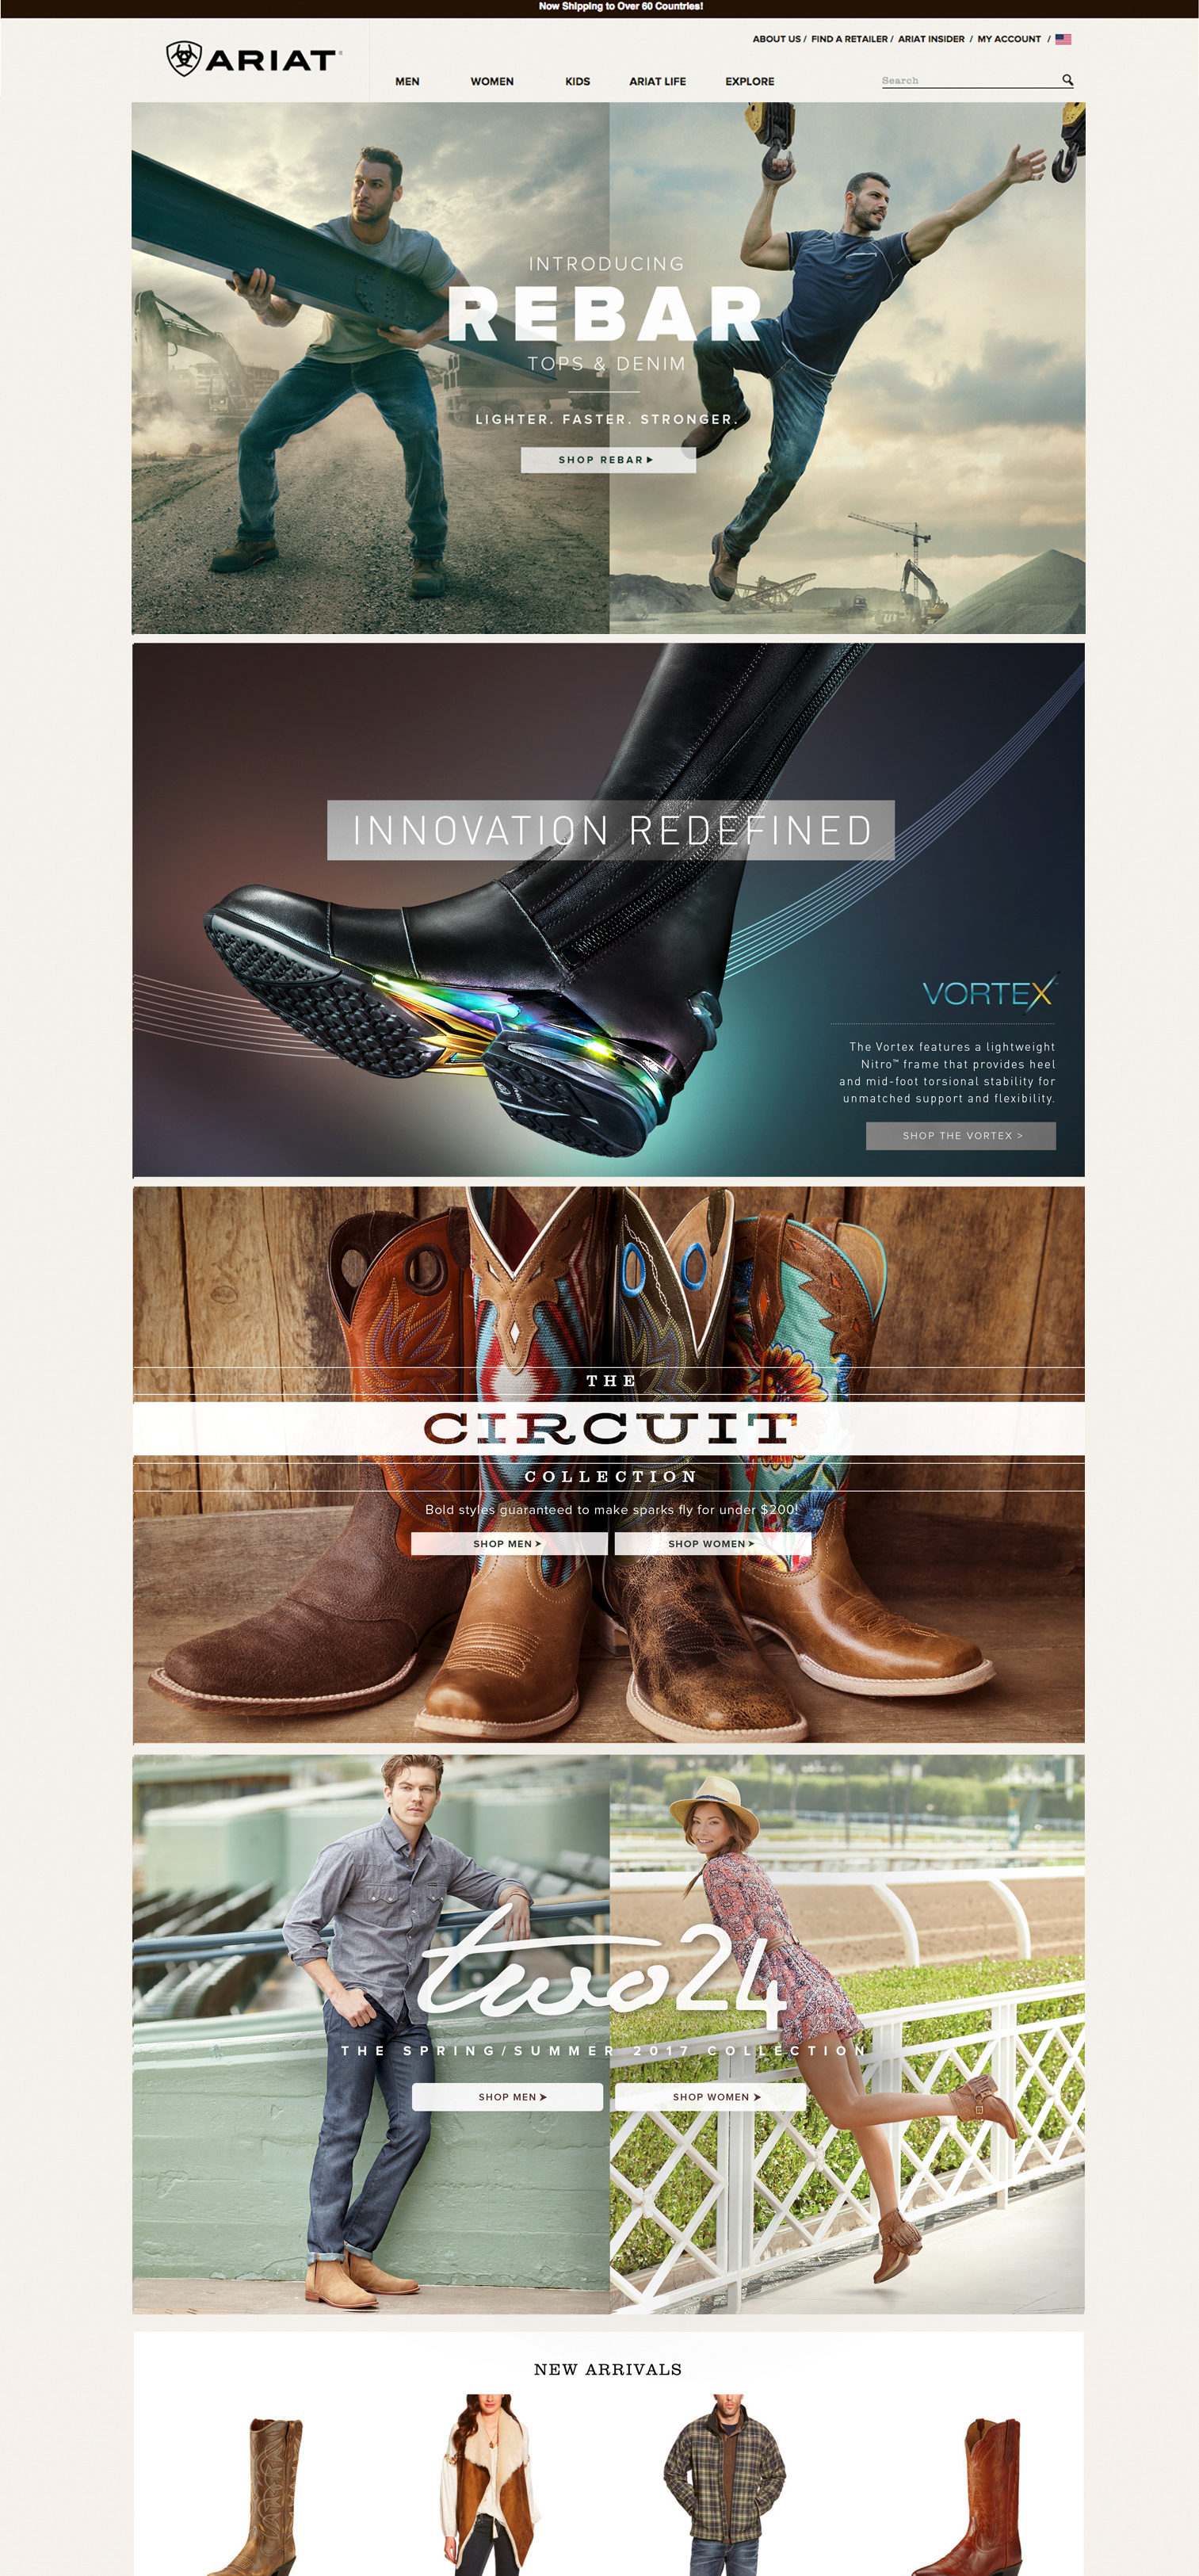 Ariat.com home page layout